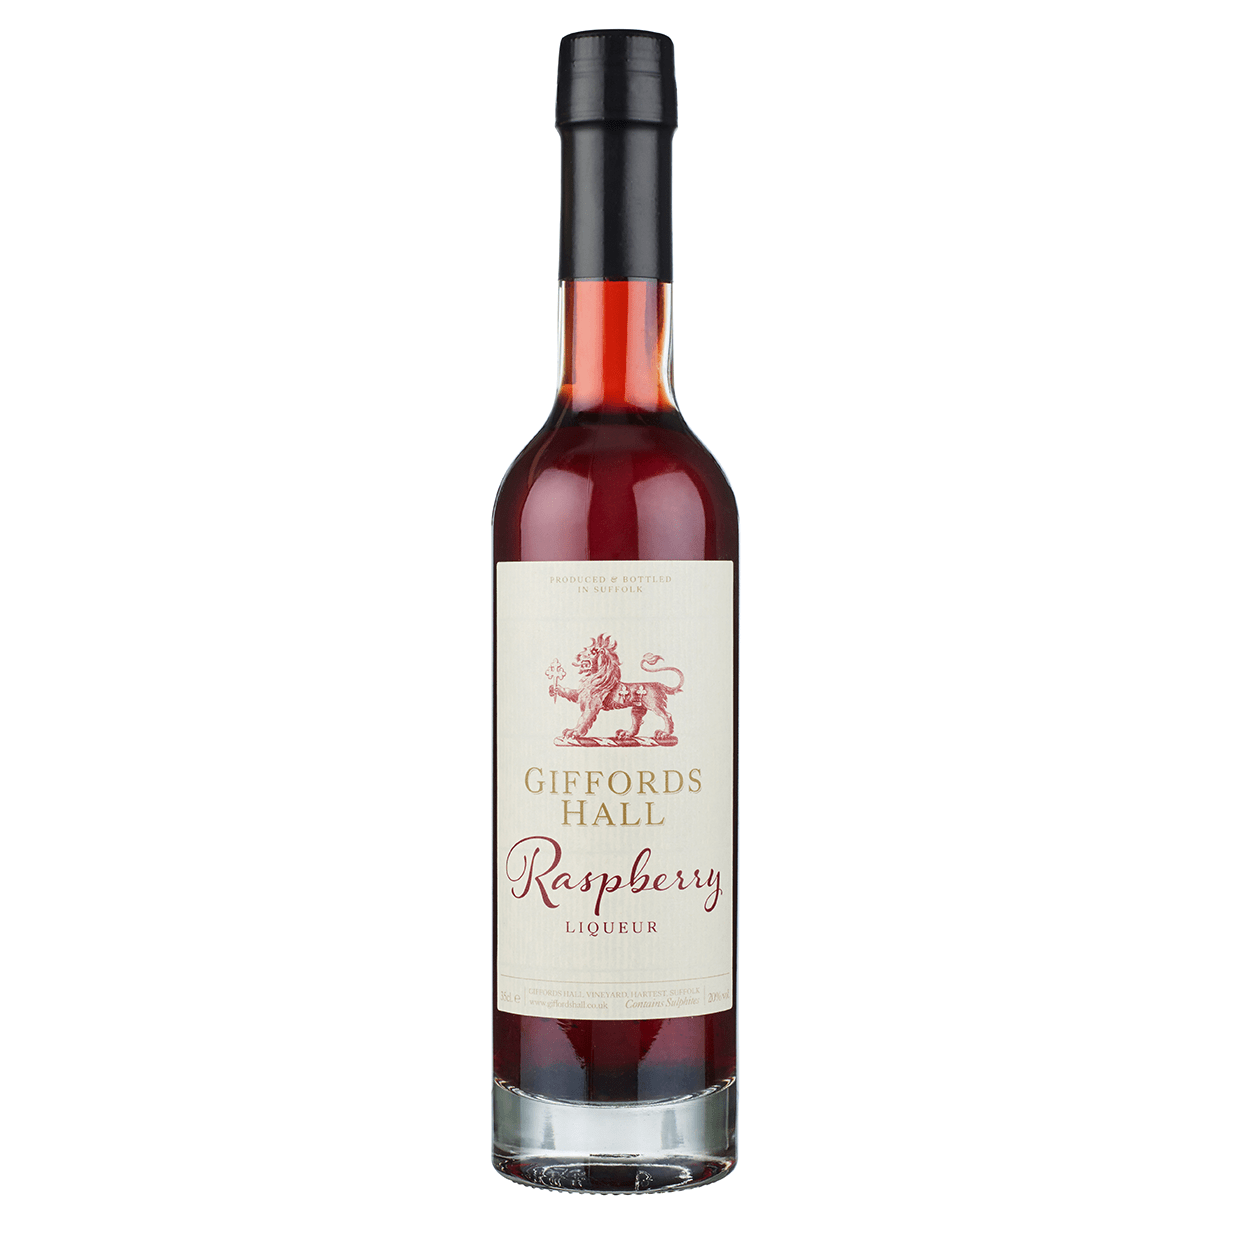 Giffords Hall Raspberry Liqueur NV bottle shot